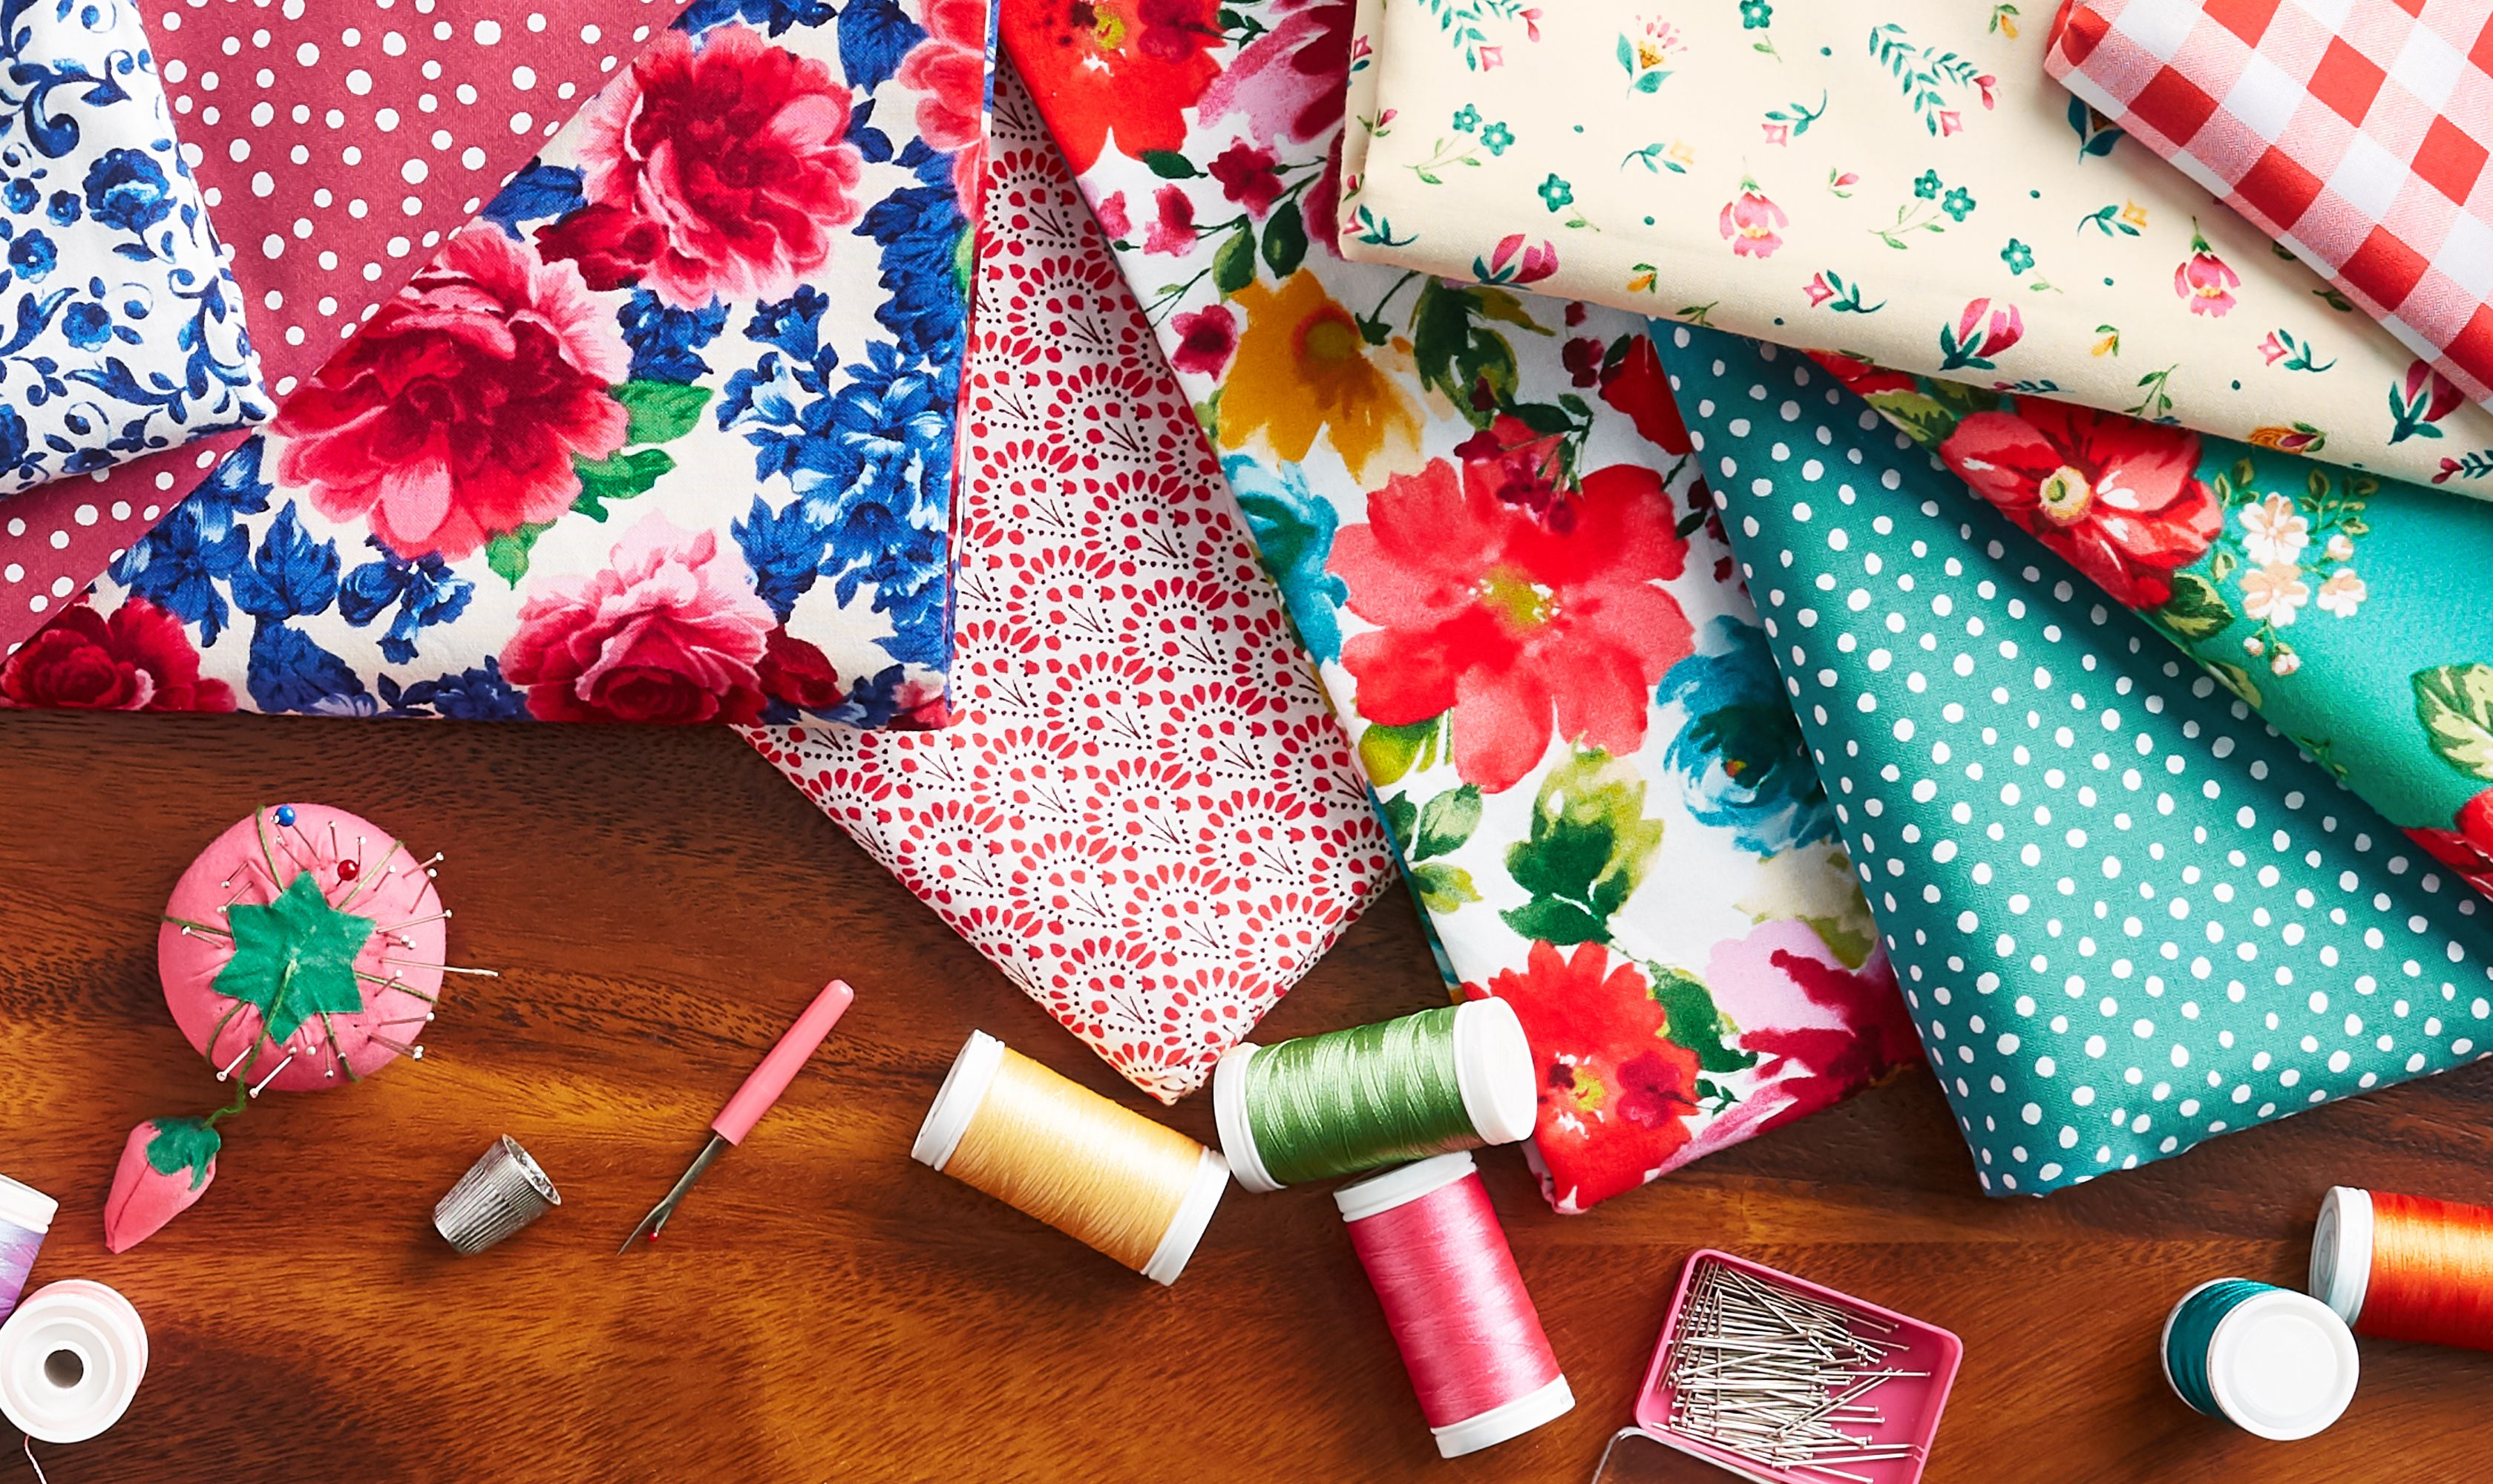 The Pioneer Woman Fabric Ree Drummond S New Fabric Line At Walmart